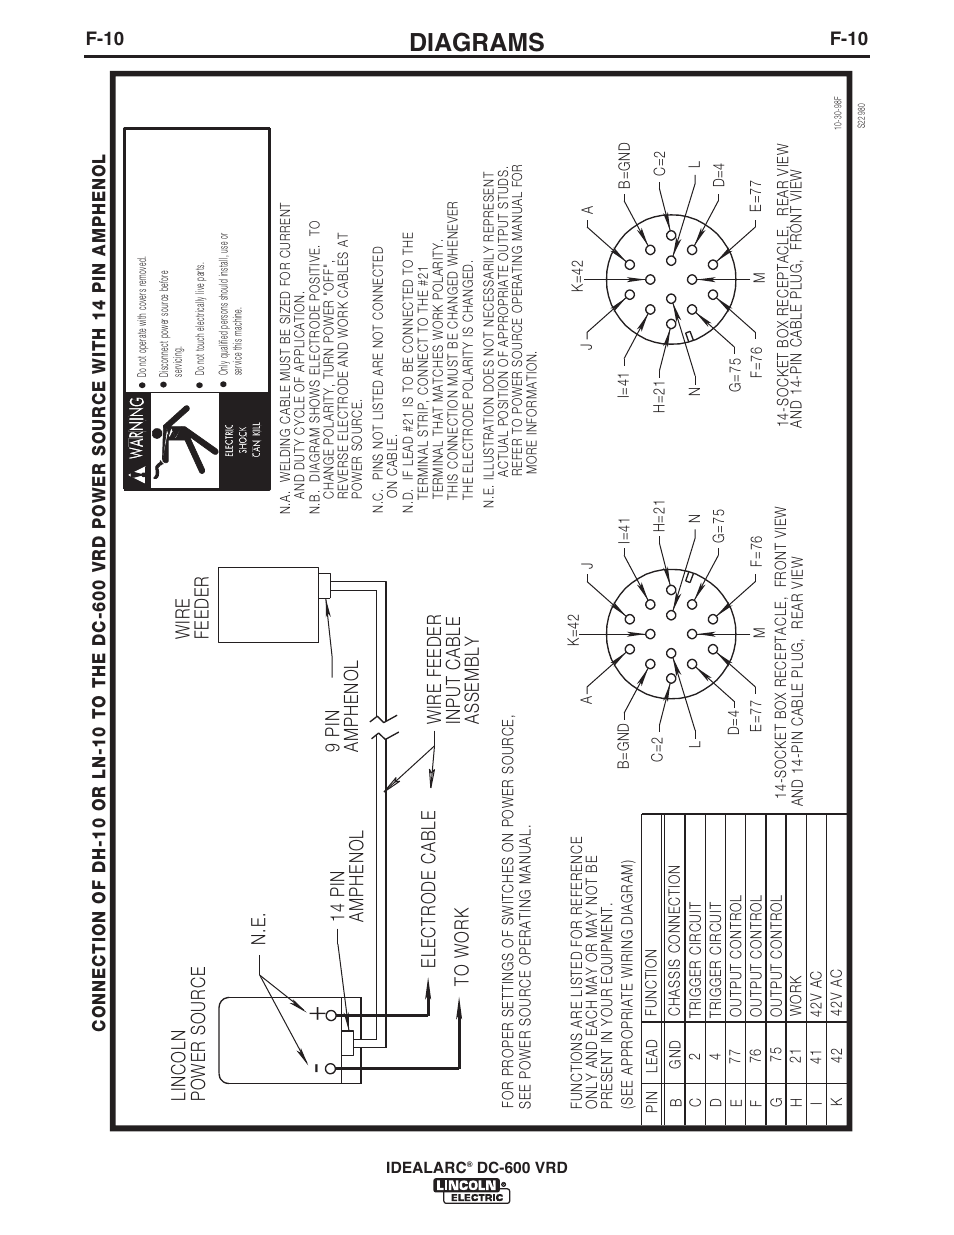 lincoln dc 400 wiring diagram lincoln printable wiring lincoln idealarc wiring diagram rzr 4 wiring diagram dach wiring source